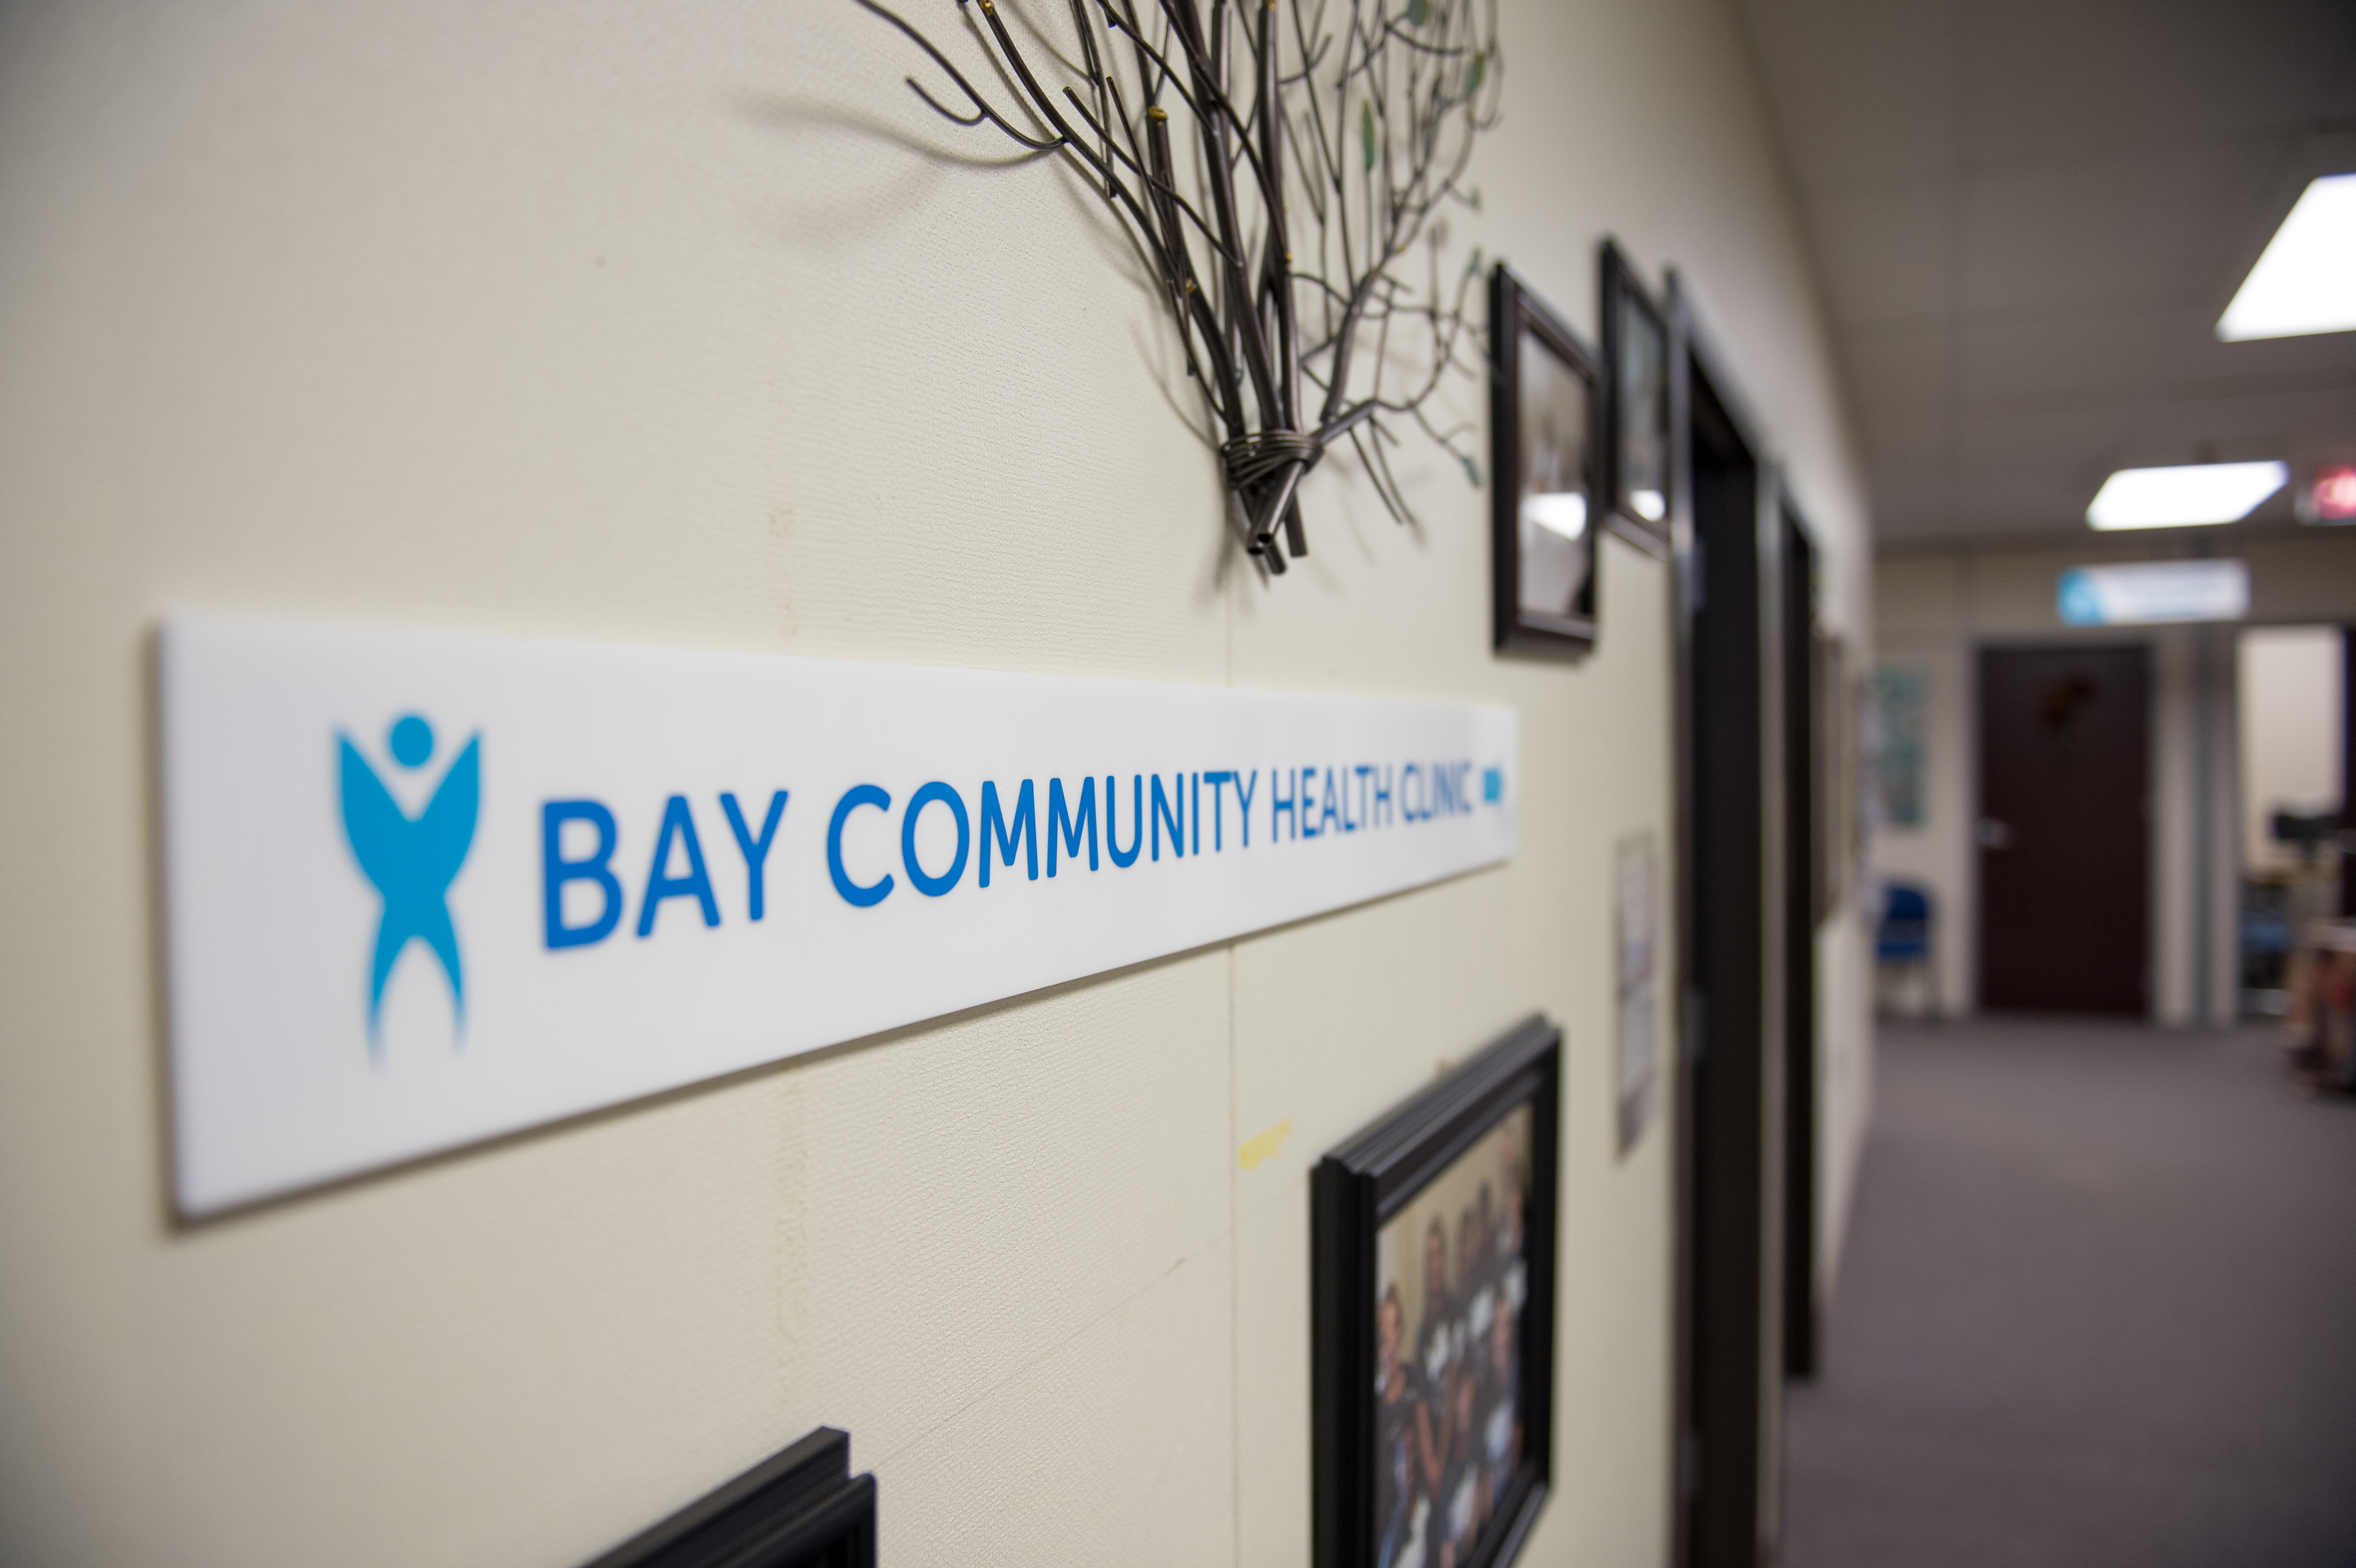 Bay Community Health Clinic entryway and sign